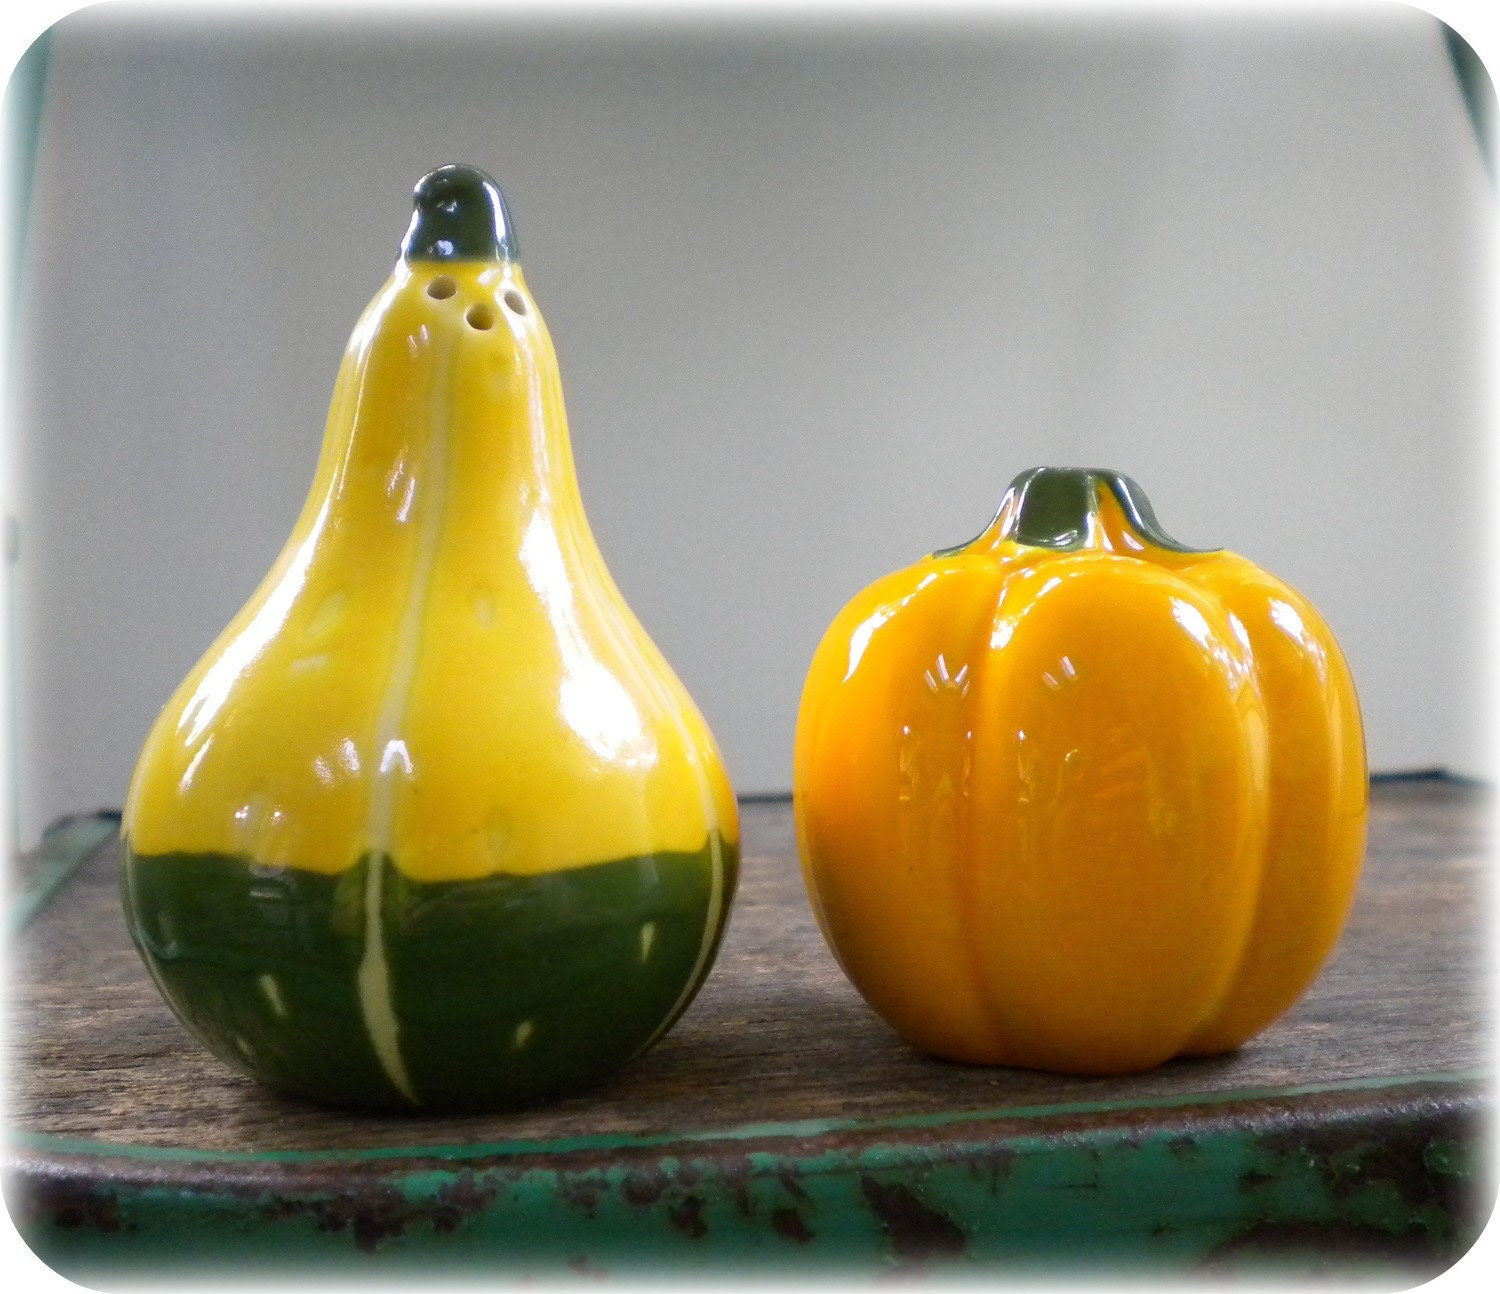 Gourd and Pumpkin Salt and Pepper